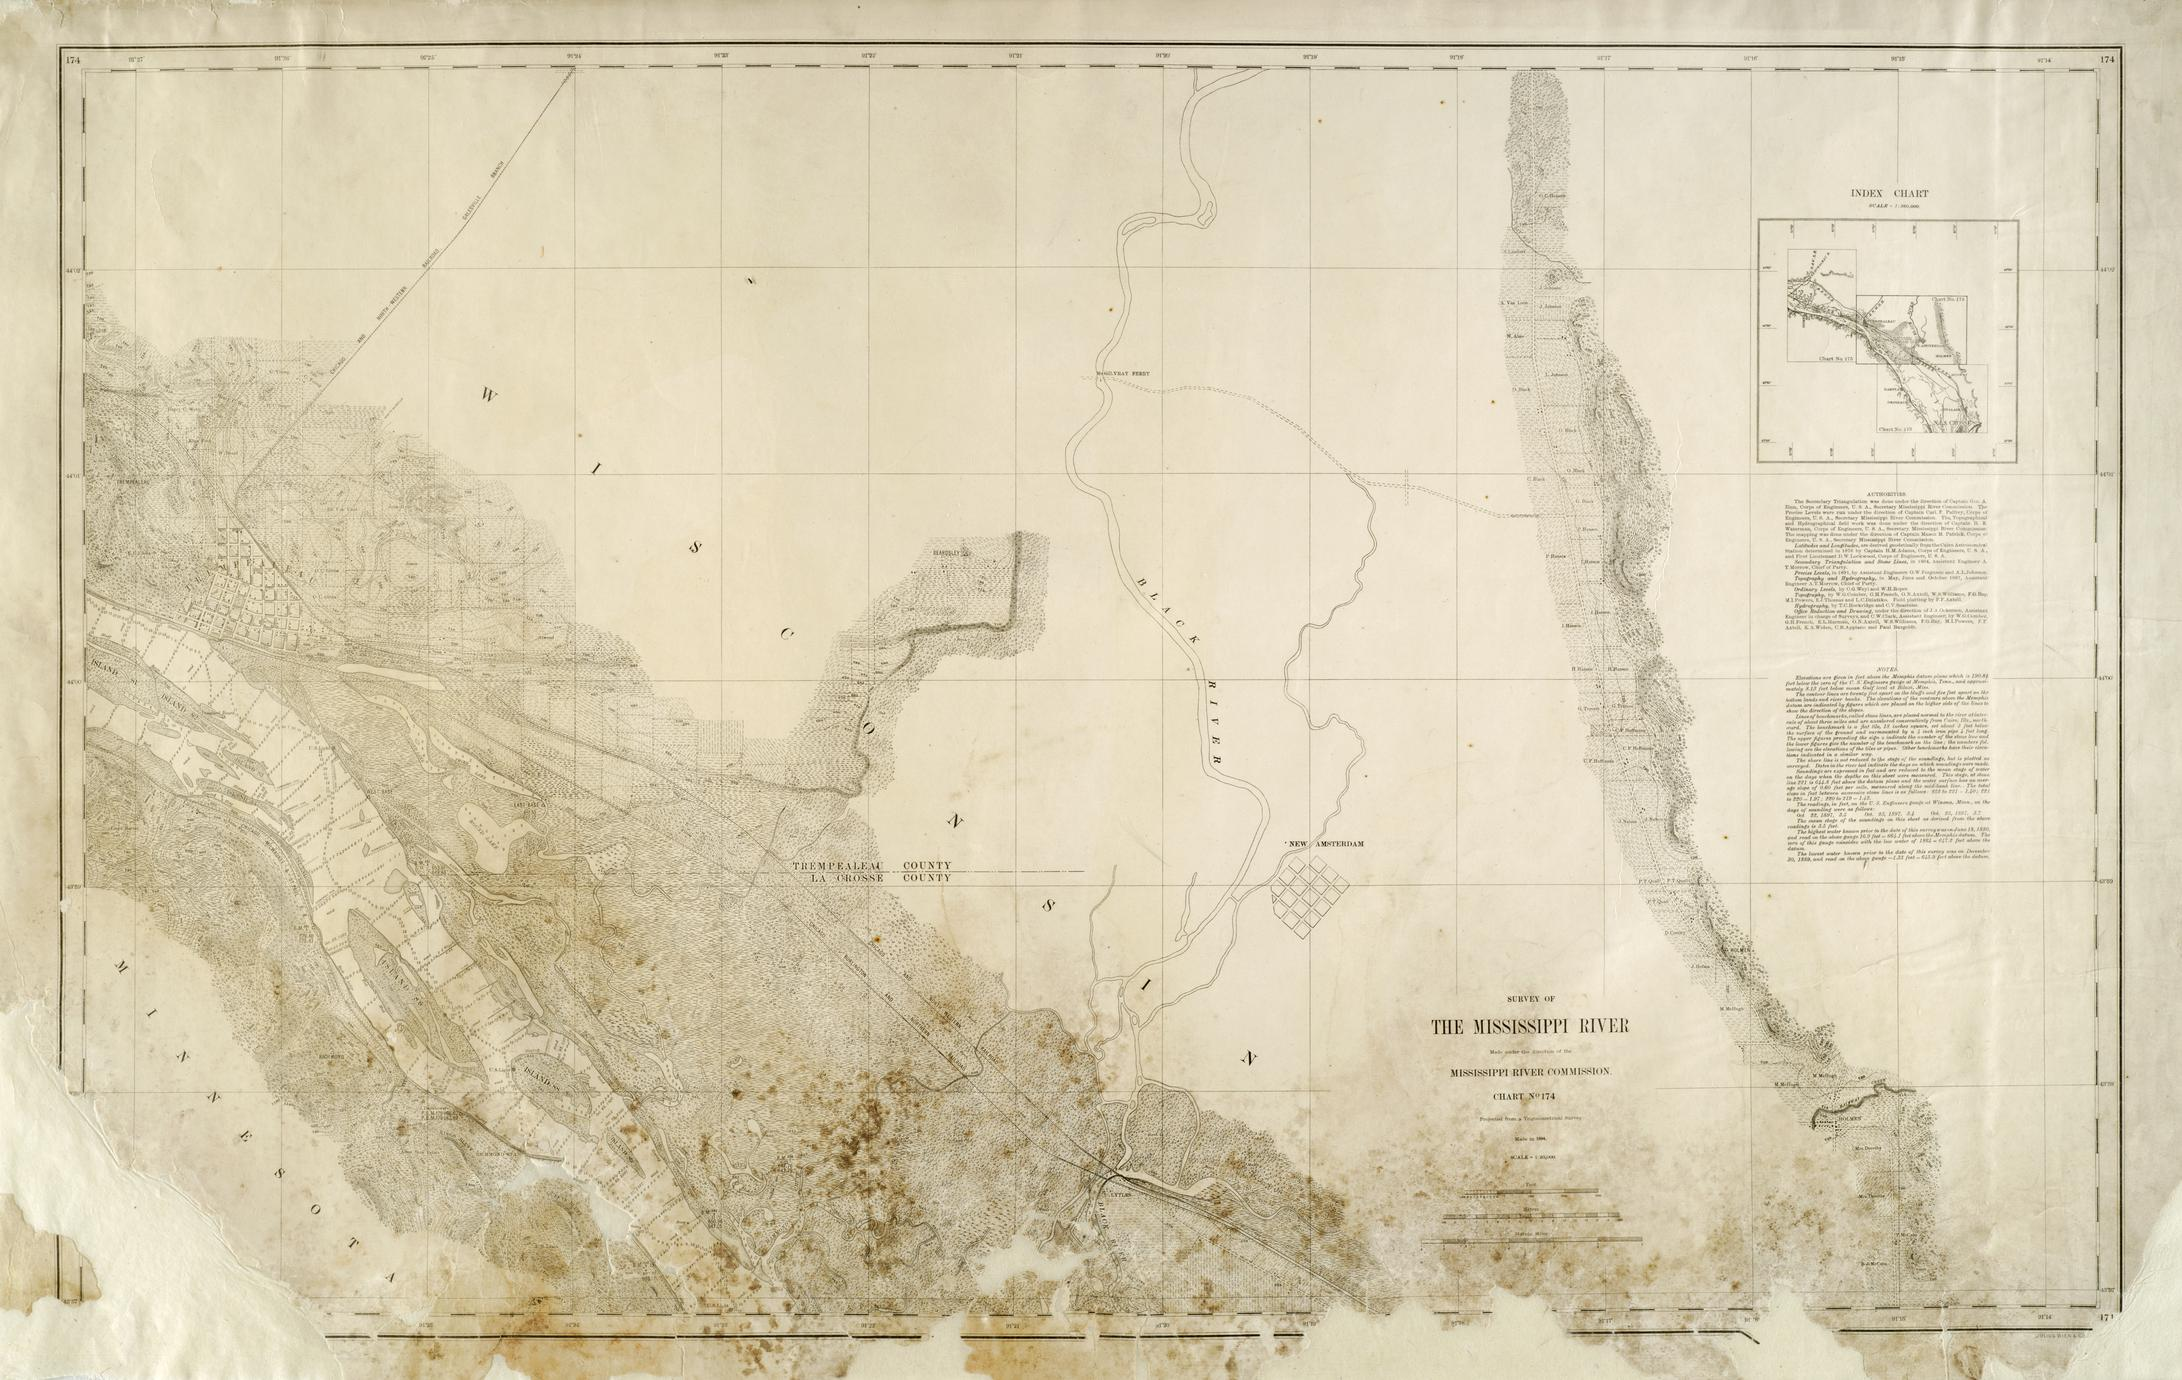 Survey of the Mississippi River, Chart 174